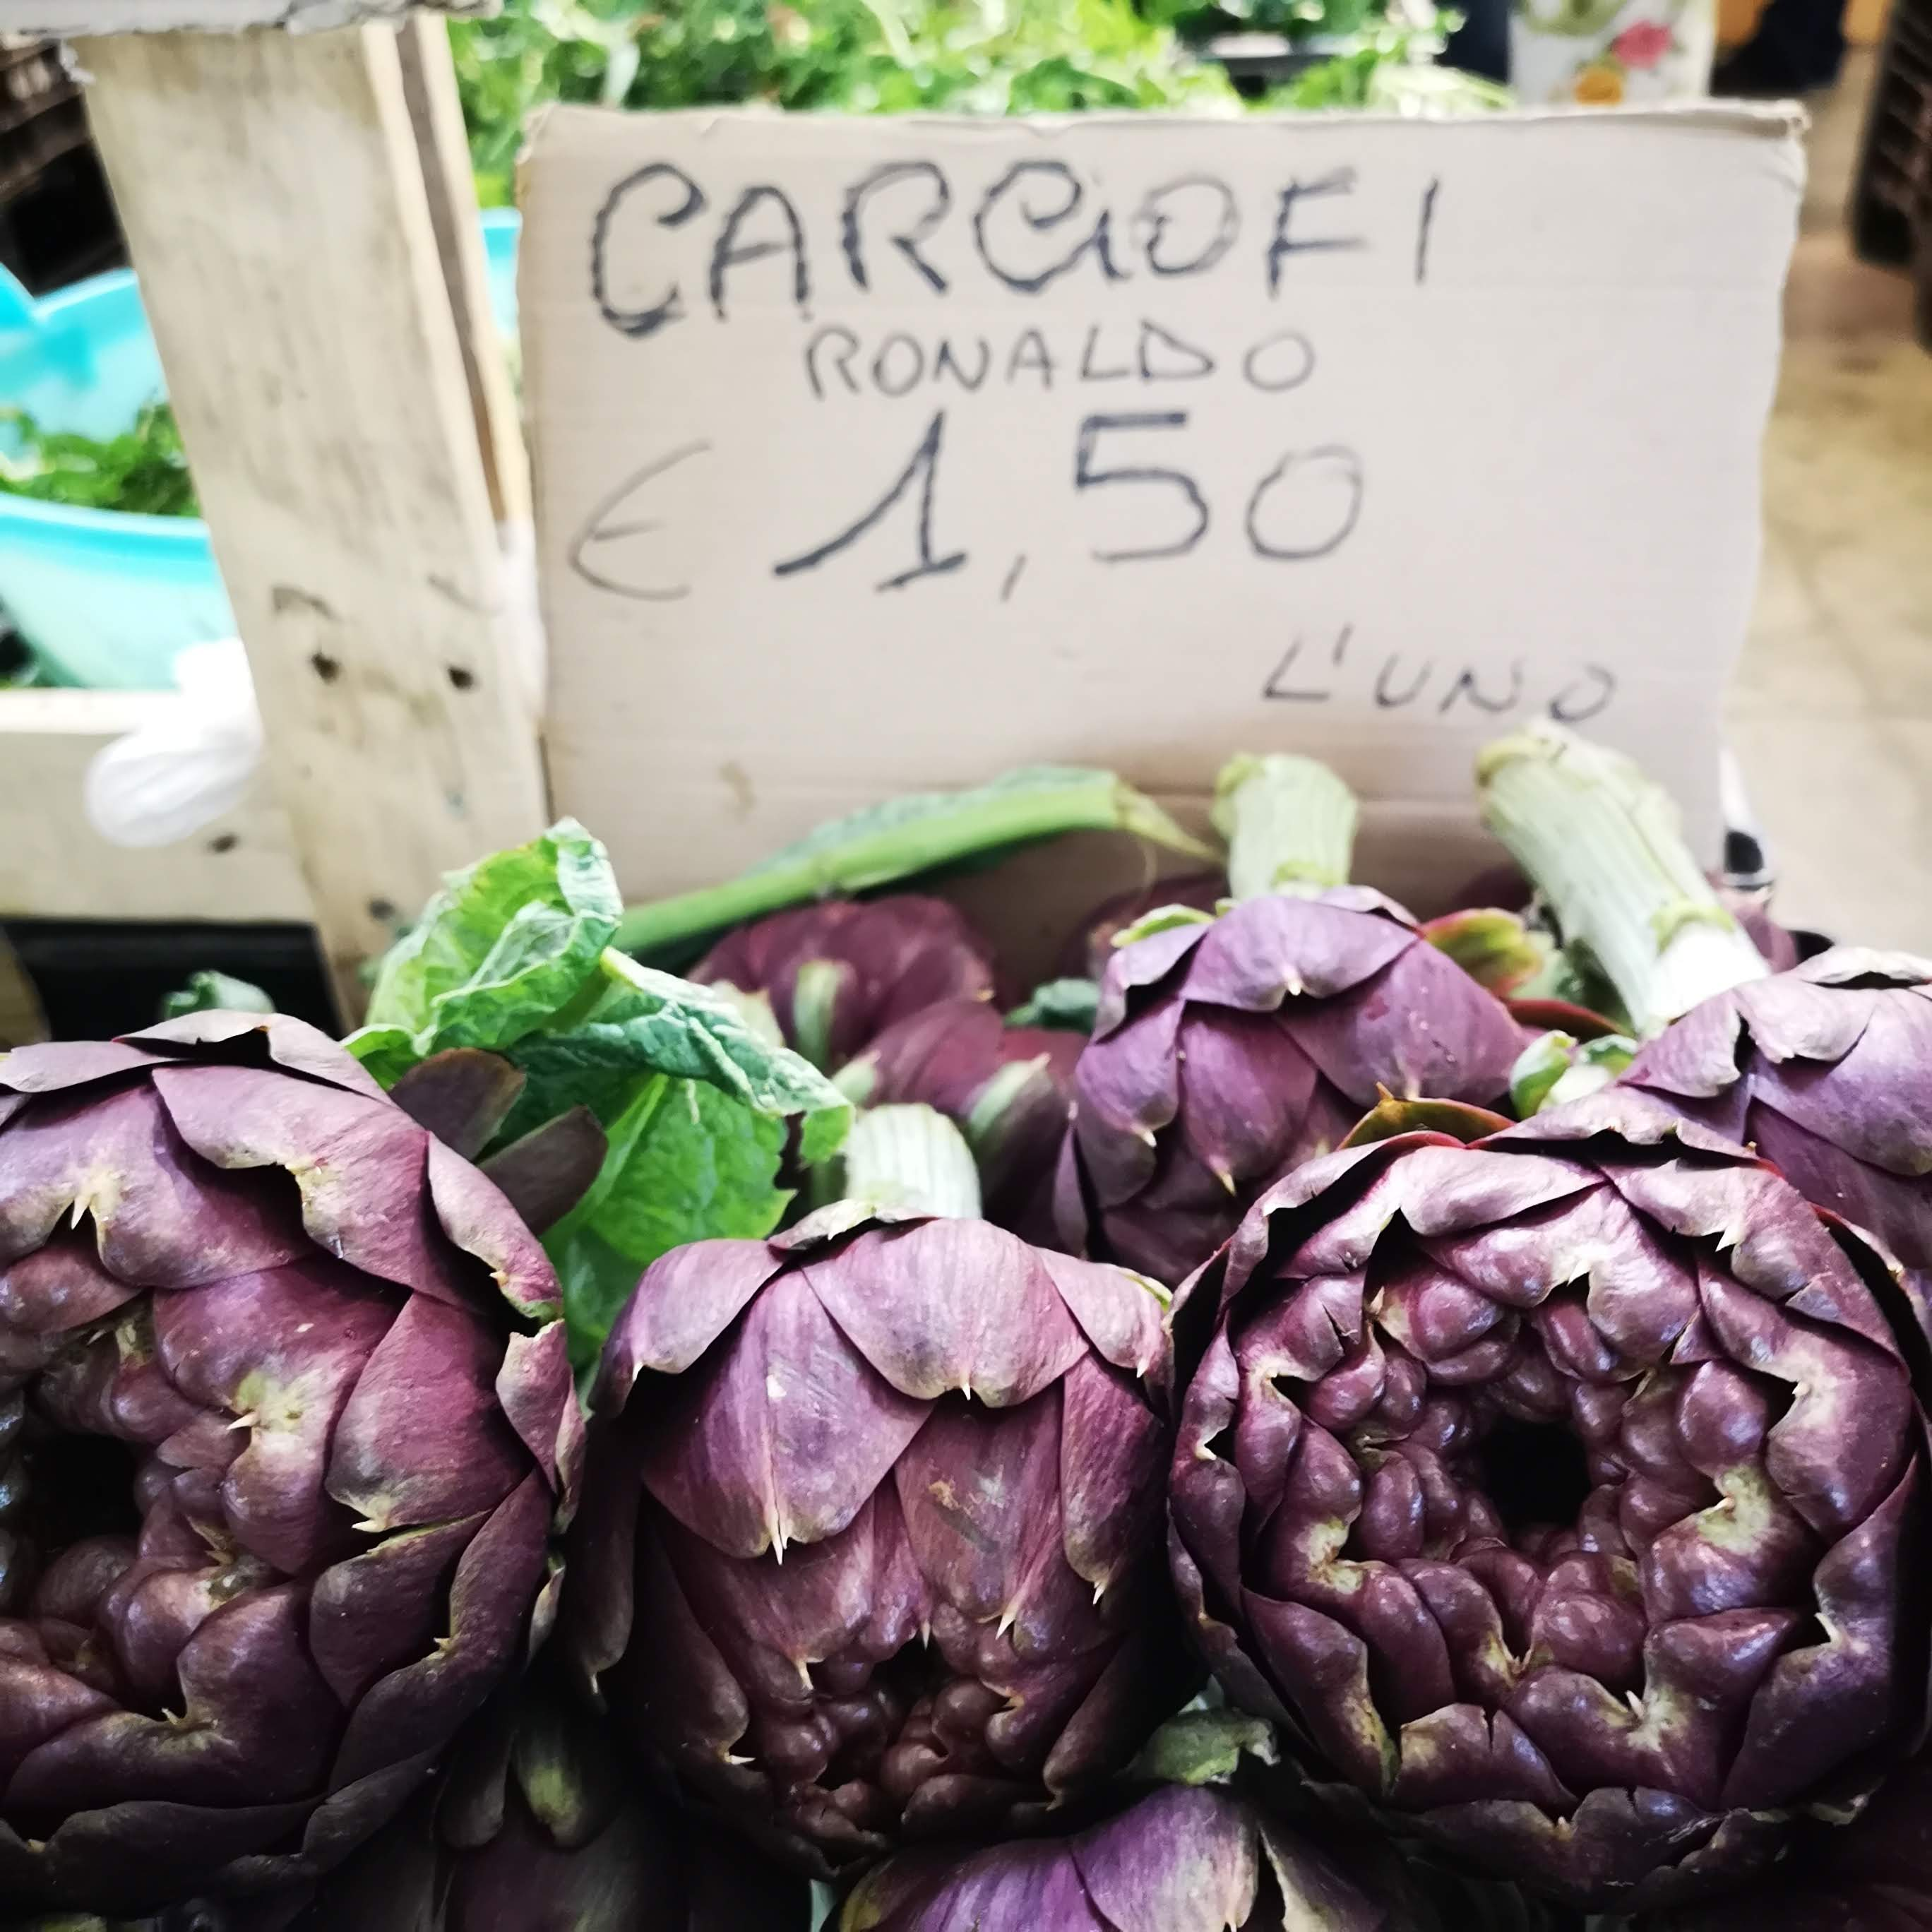 Farmer's Market Garbatella